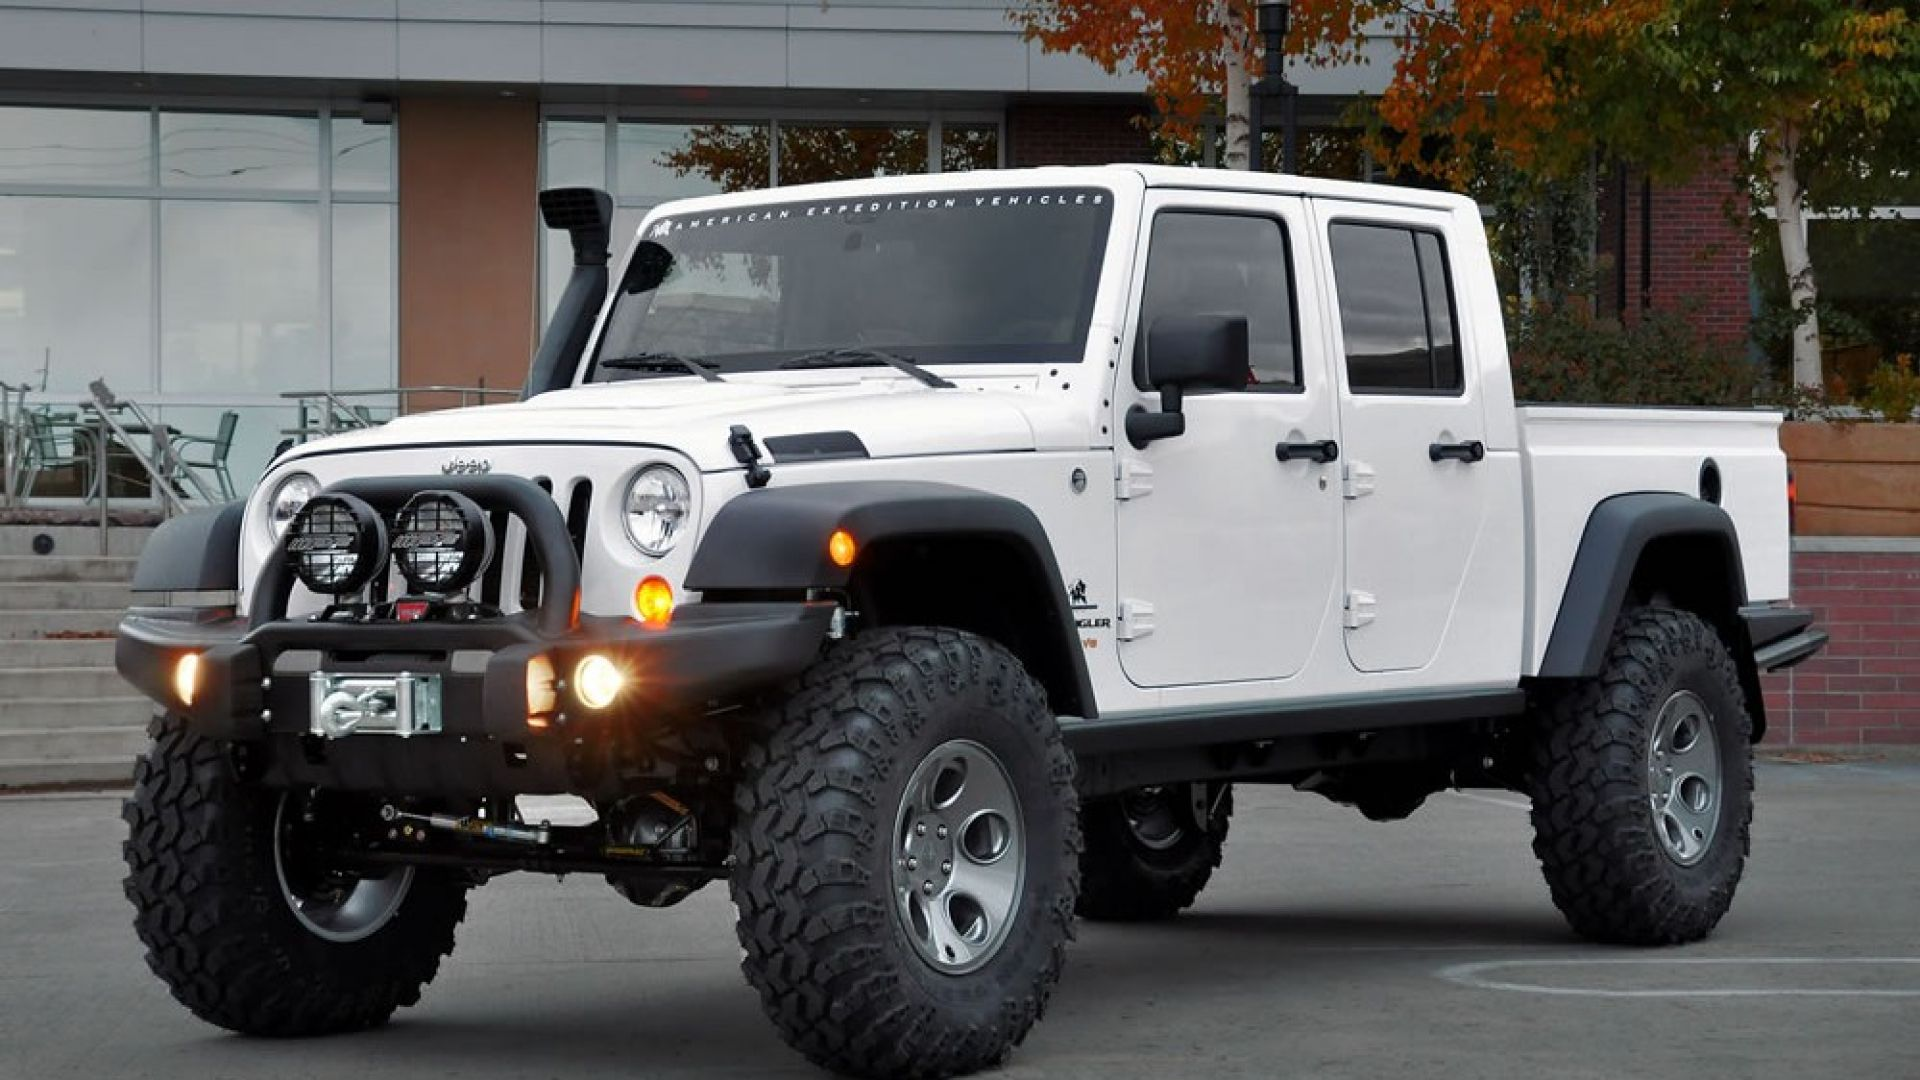 Concept Car Aev Brute Double Cab Motorbox Jeep Wrangler Gallery